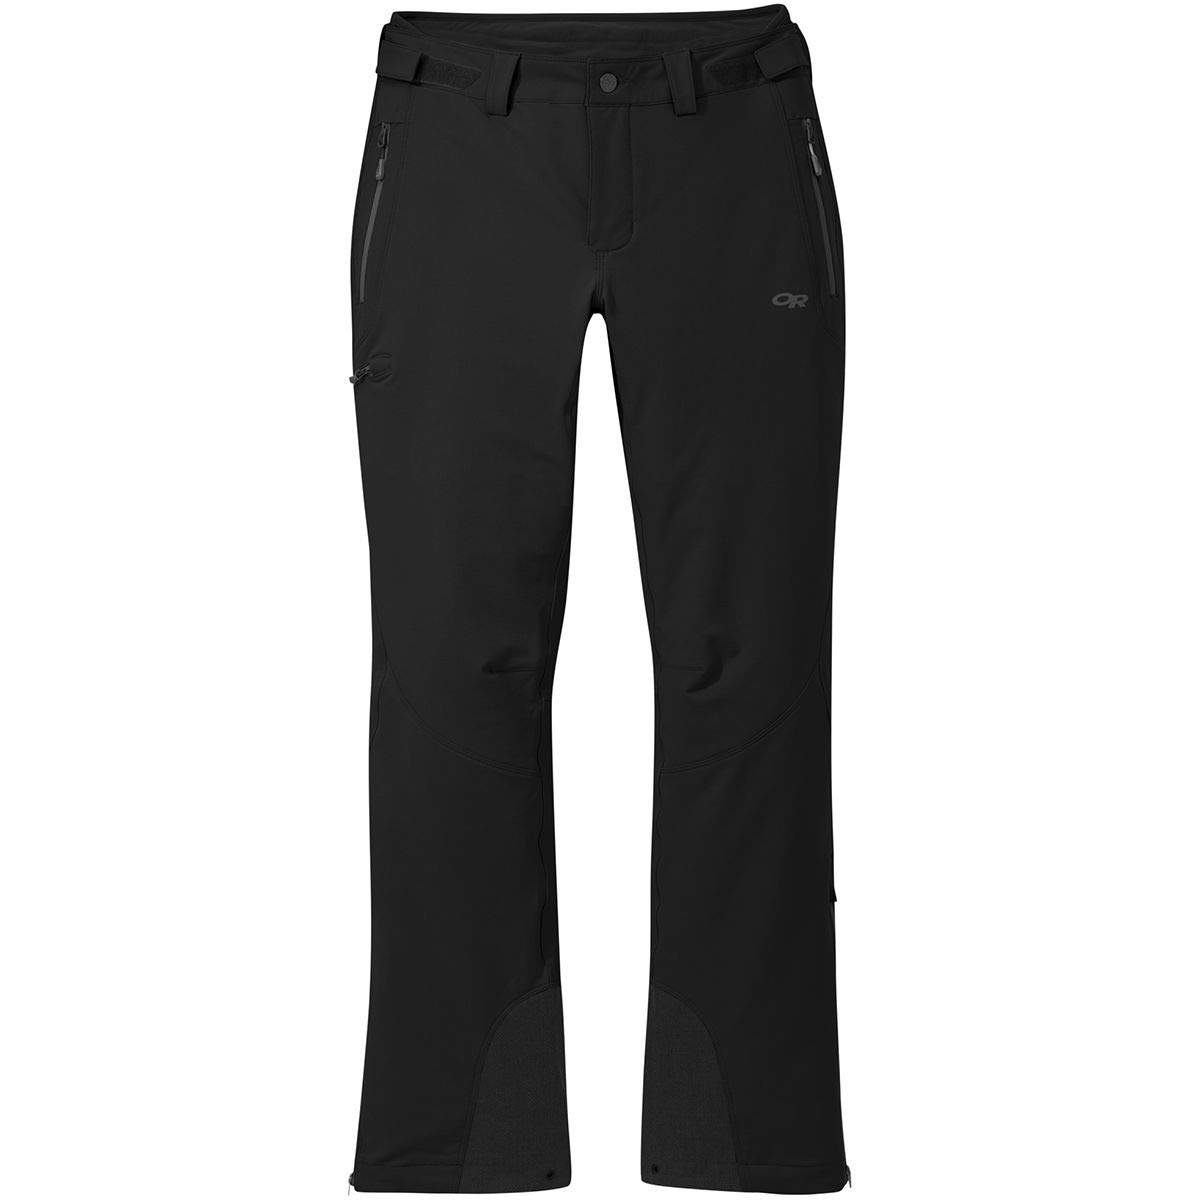 Outdoor Research Cirque II Women's Pants